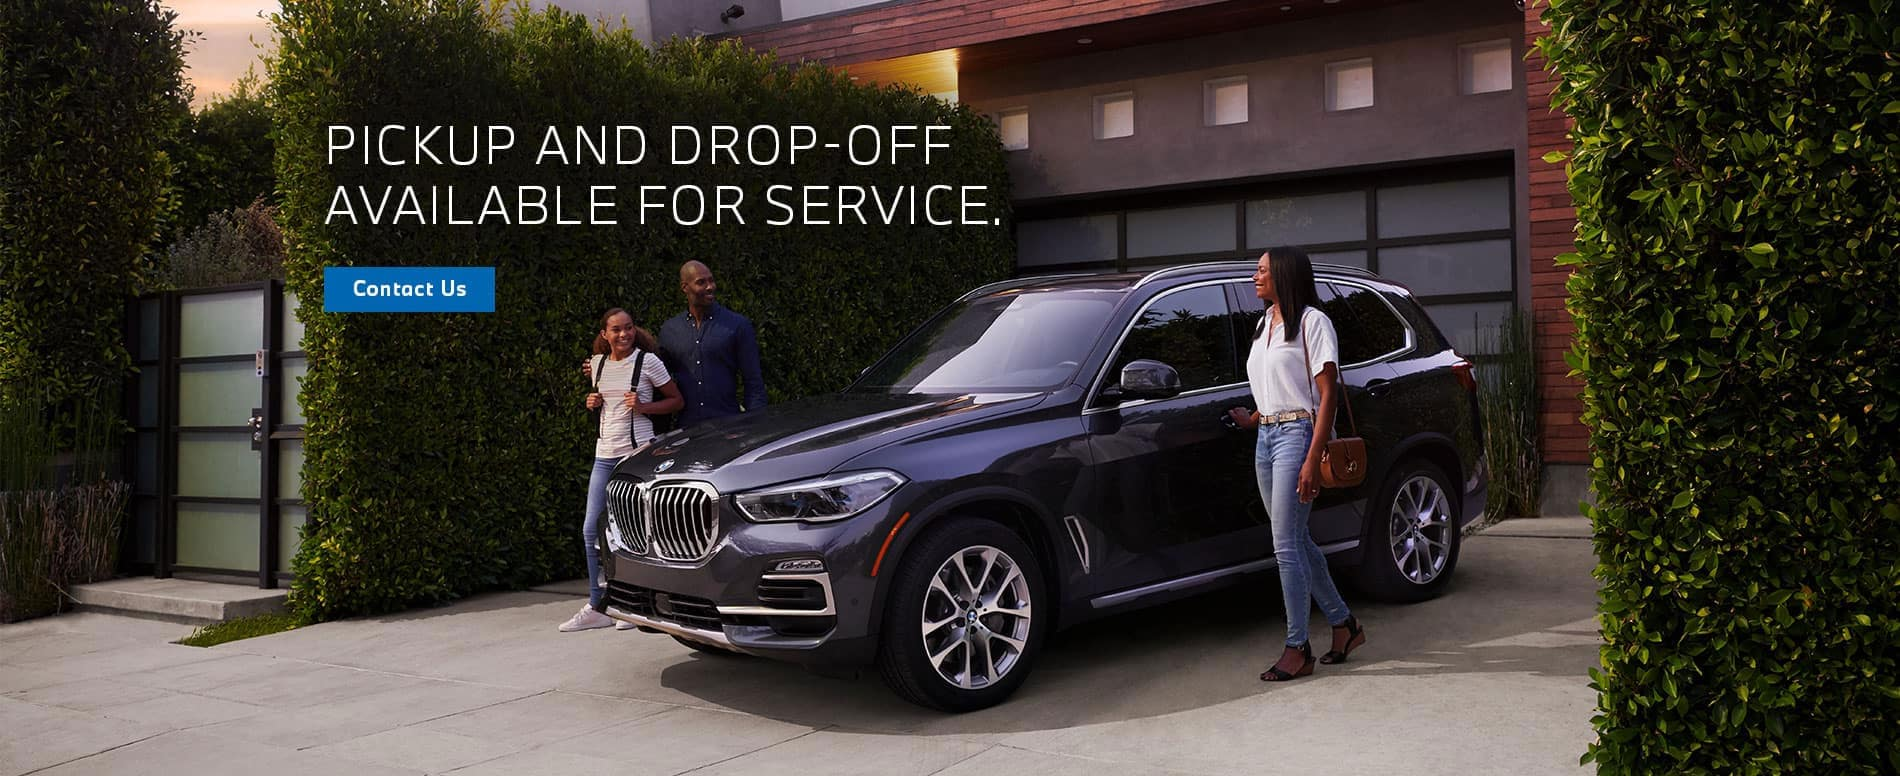 Pick up and drop off available for service. Black car parked in a driveway with family.